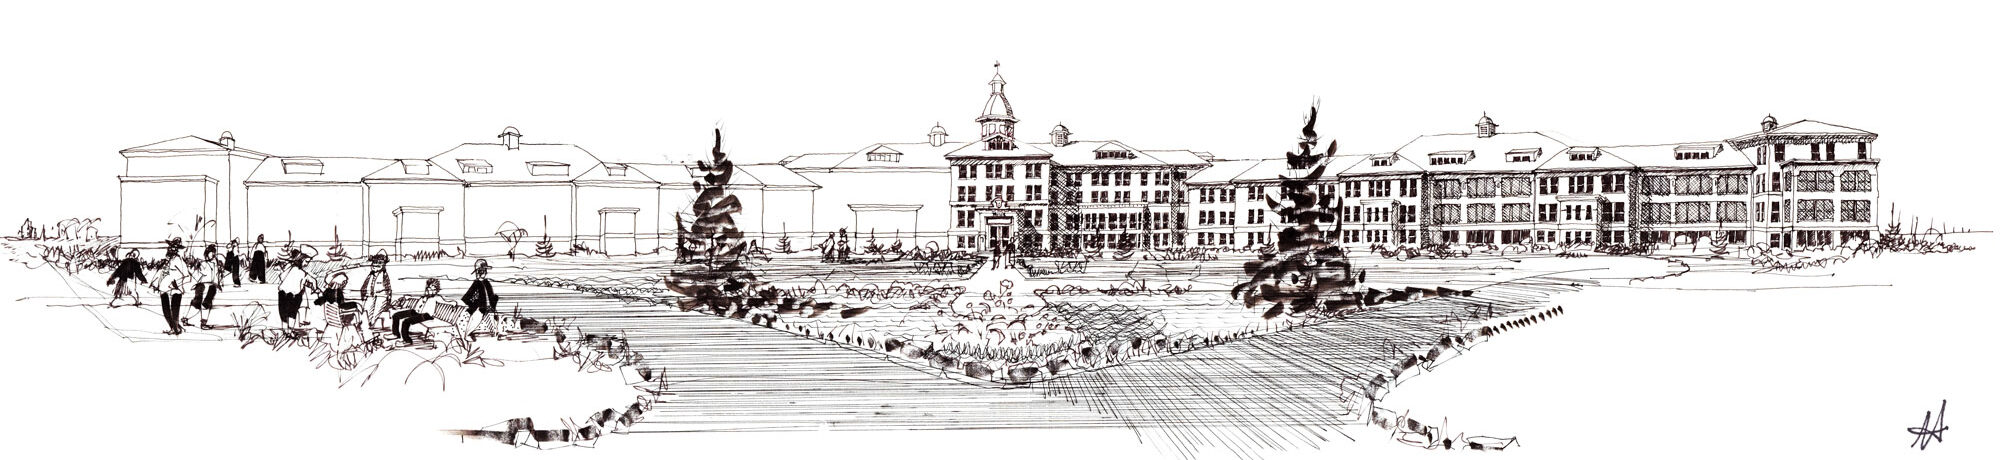 sketch of old asylum institution with grand driveway entrance